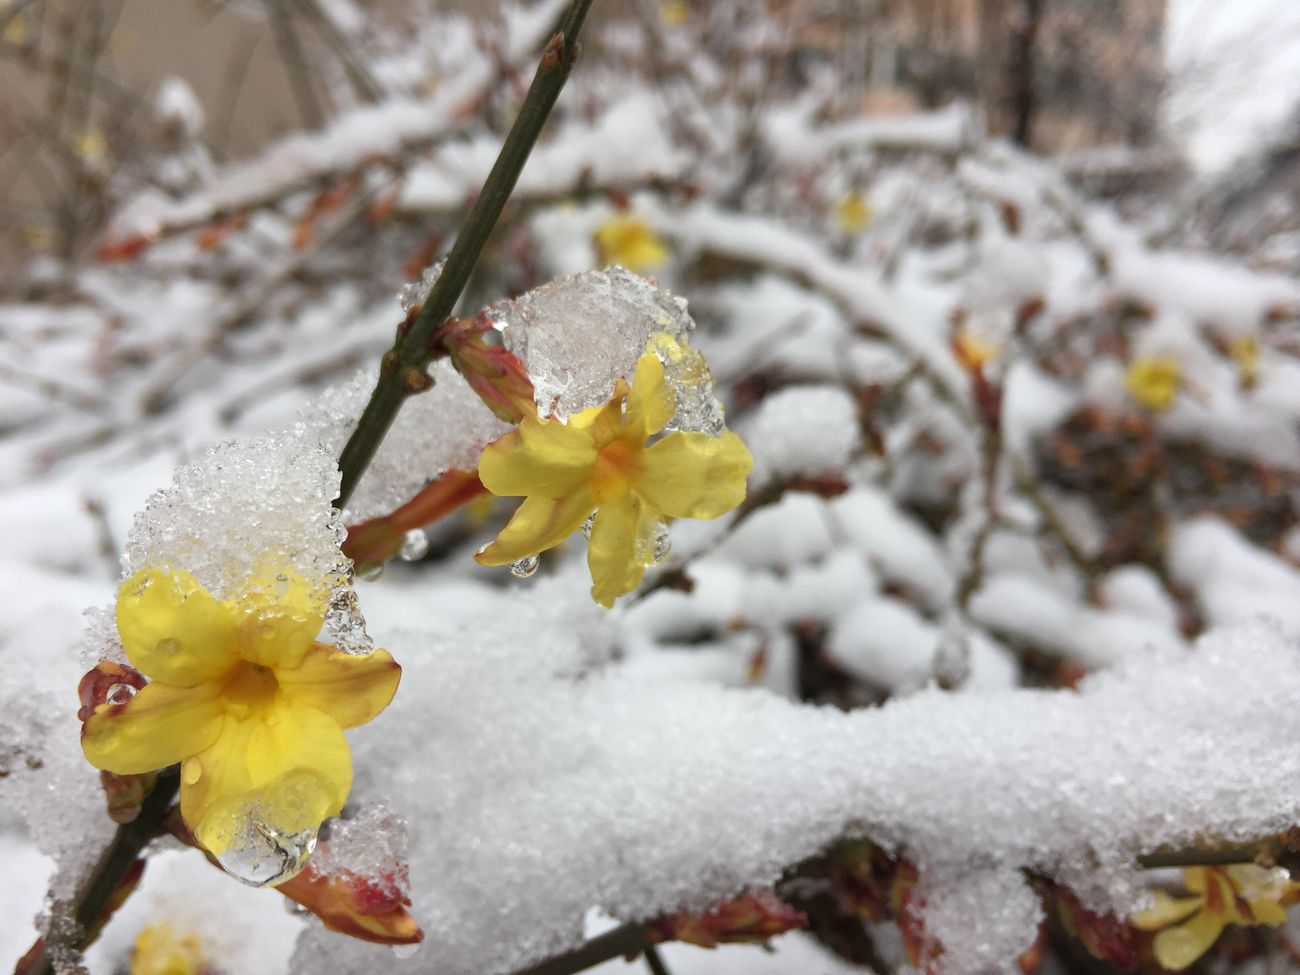 Nature Fragility Beauty In Nature Growth Weather Flower Close-up Cold Temperature Wet Freshness Outdoors Plant Winter No People Petal Day Yellow Snow Flower Head